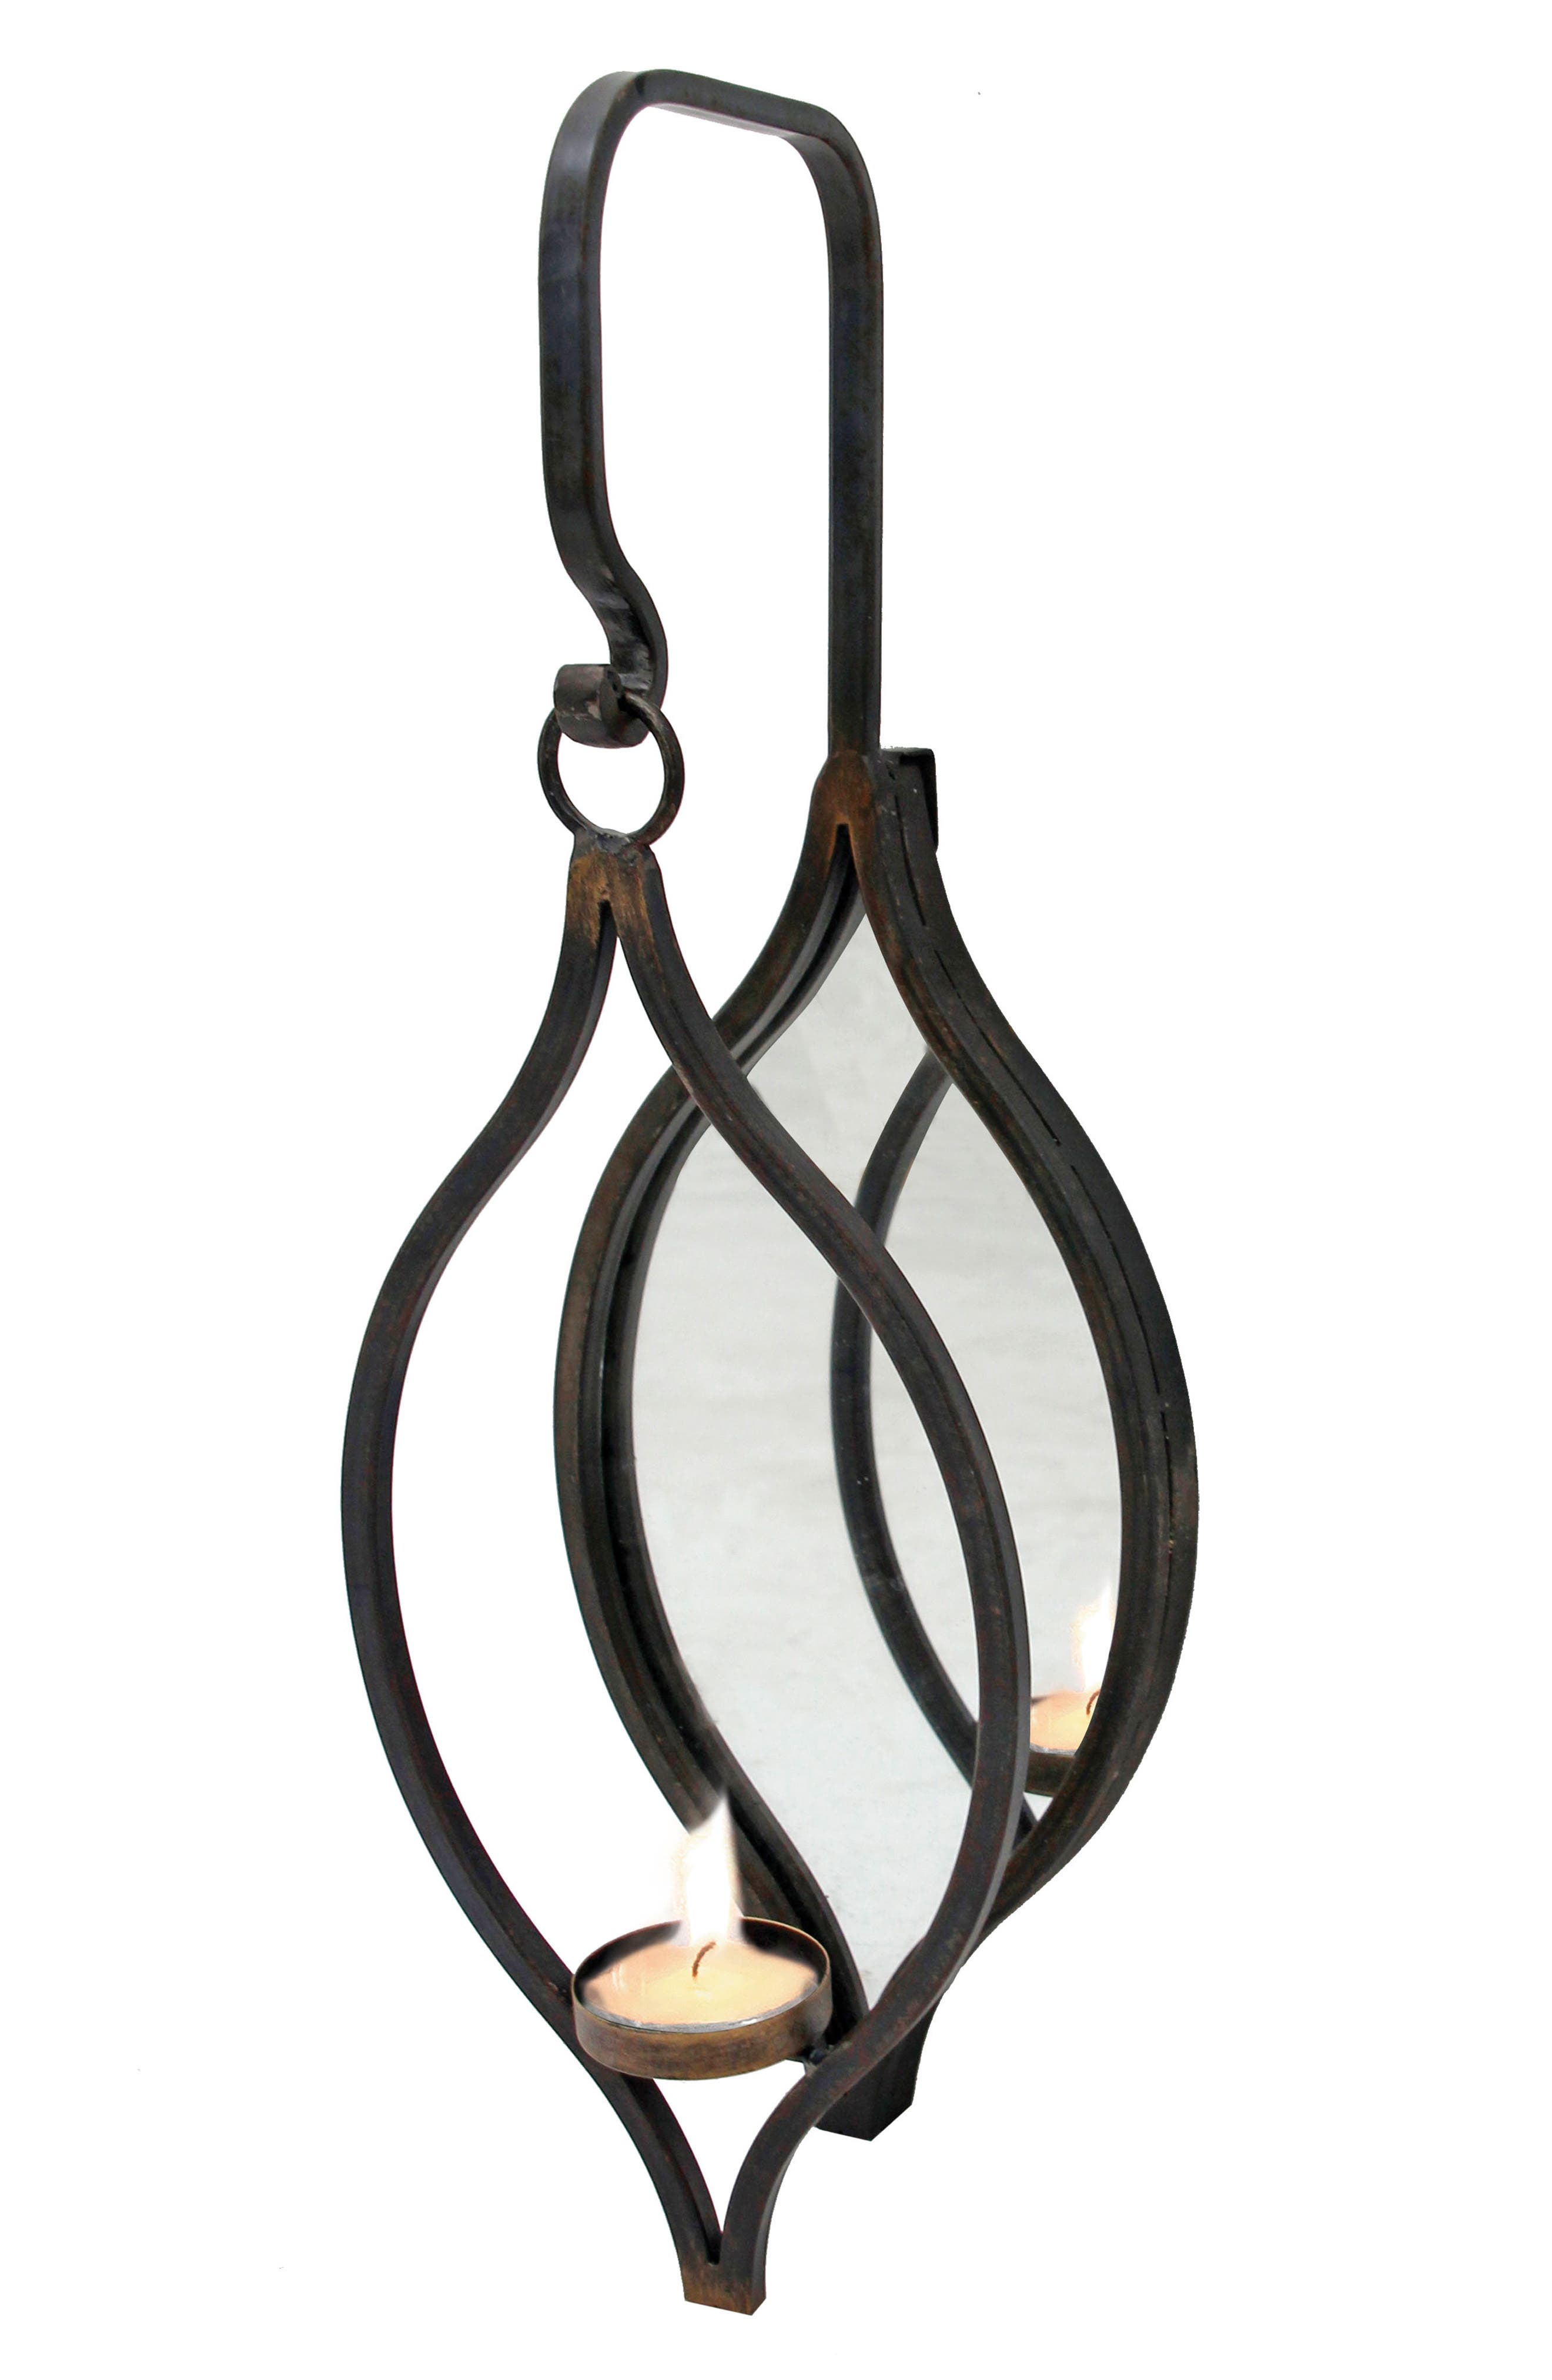 Hanging Tealight Holder,                         Main,                         color, METAL/ GLASS